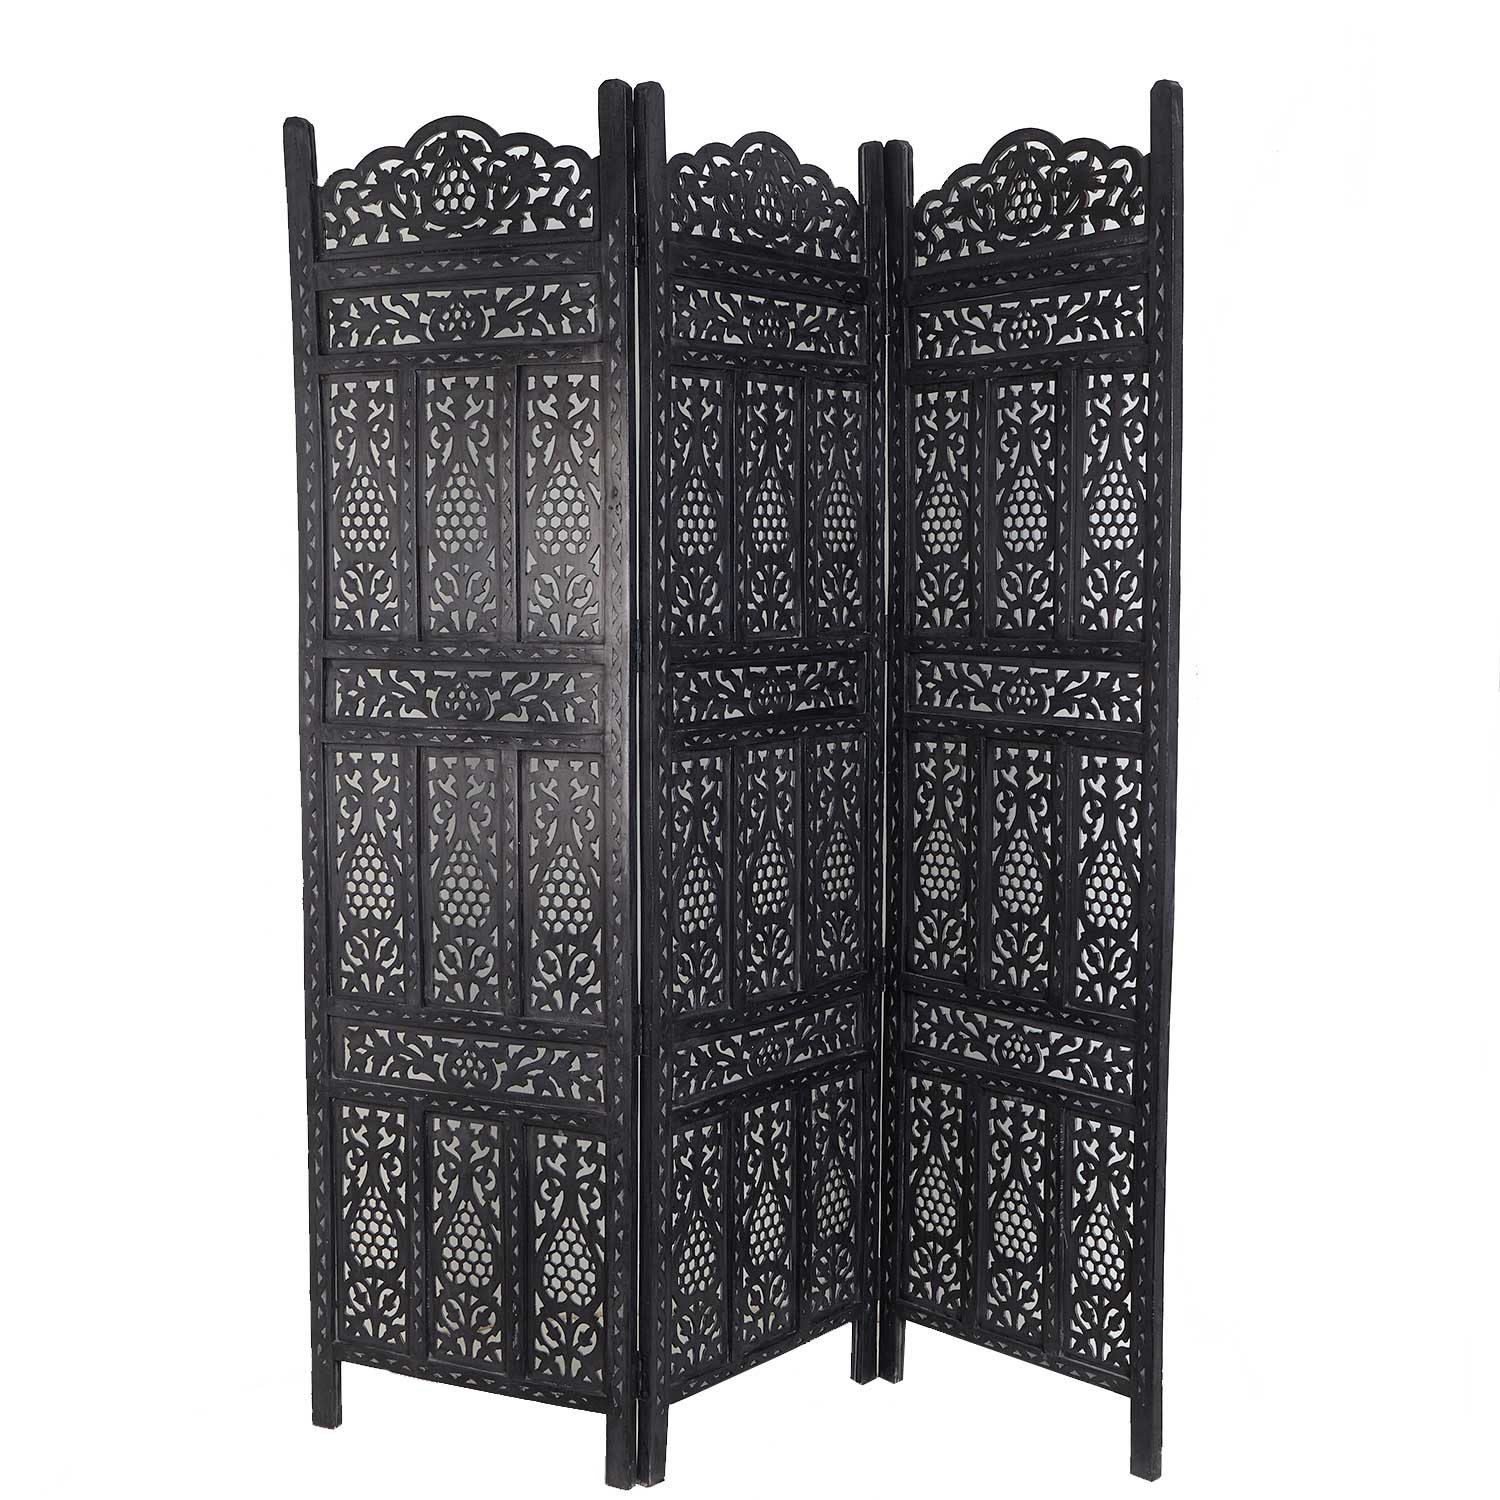 orient holz paravent alqamar bei ihrem orient shop casa. Black Bedroom Furniture Sets. Home Design Ideas